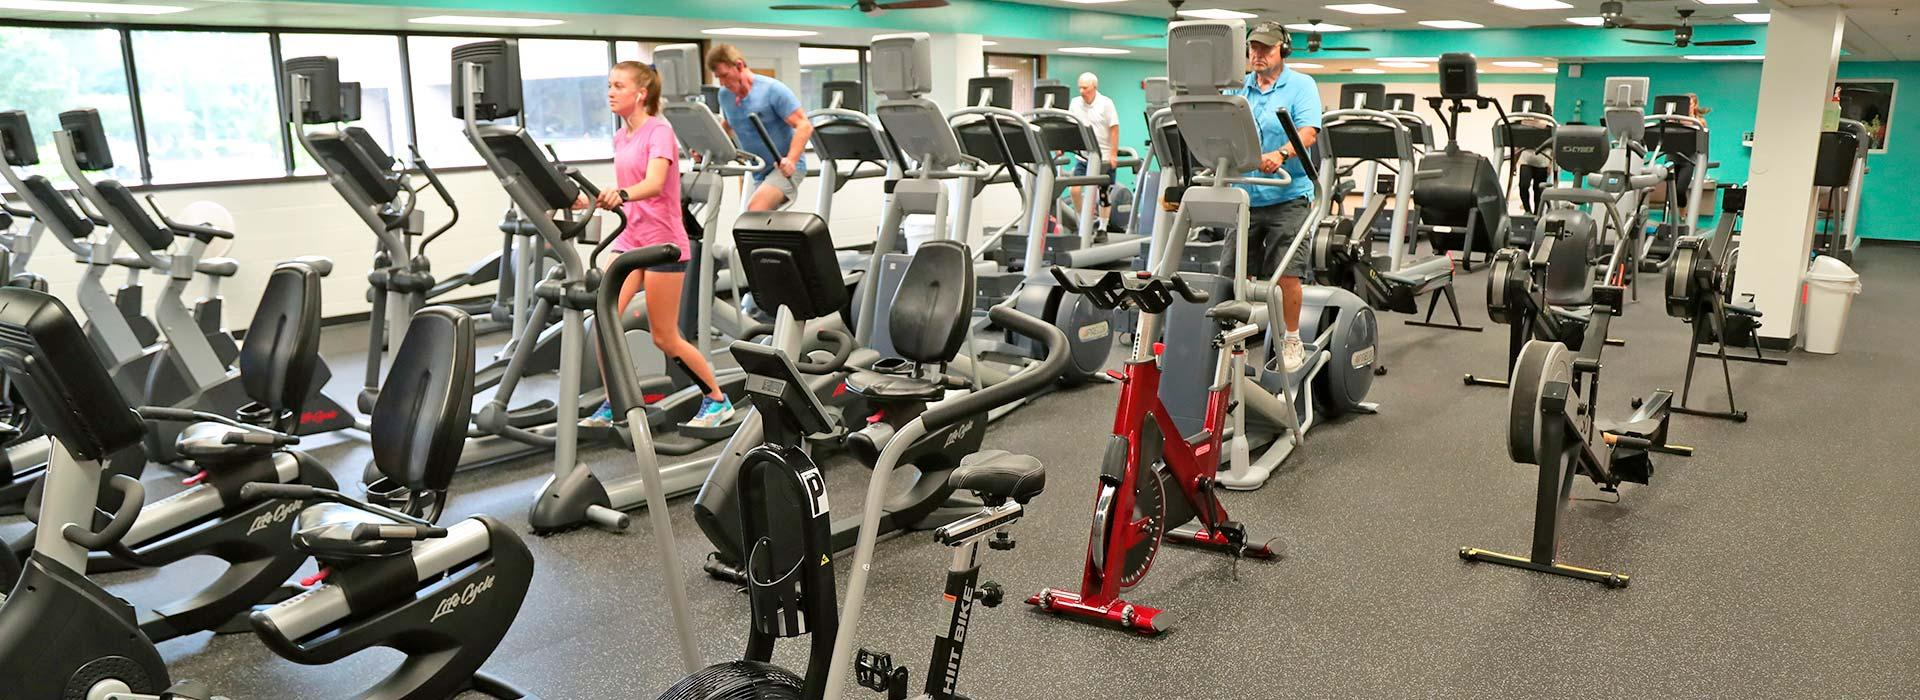 Members using cardio equipment, including treadmills, ellipticals, bikes and steppers at the Portsmouth YMCA